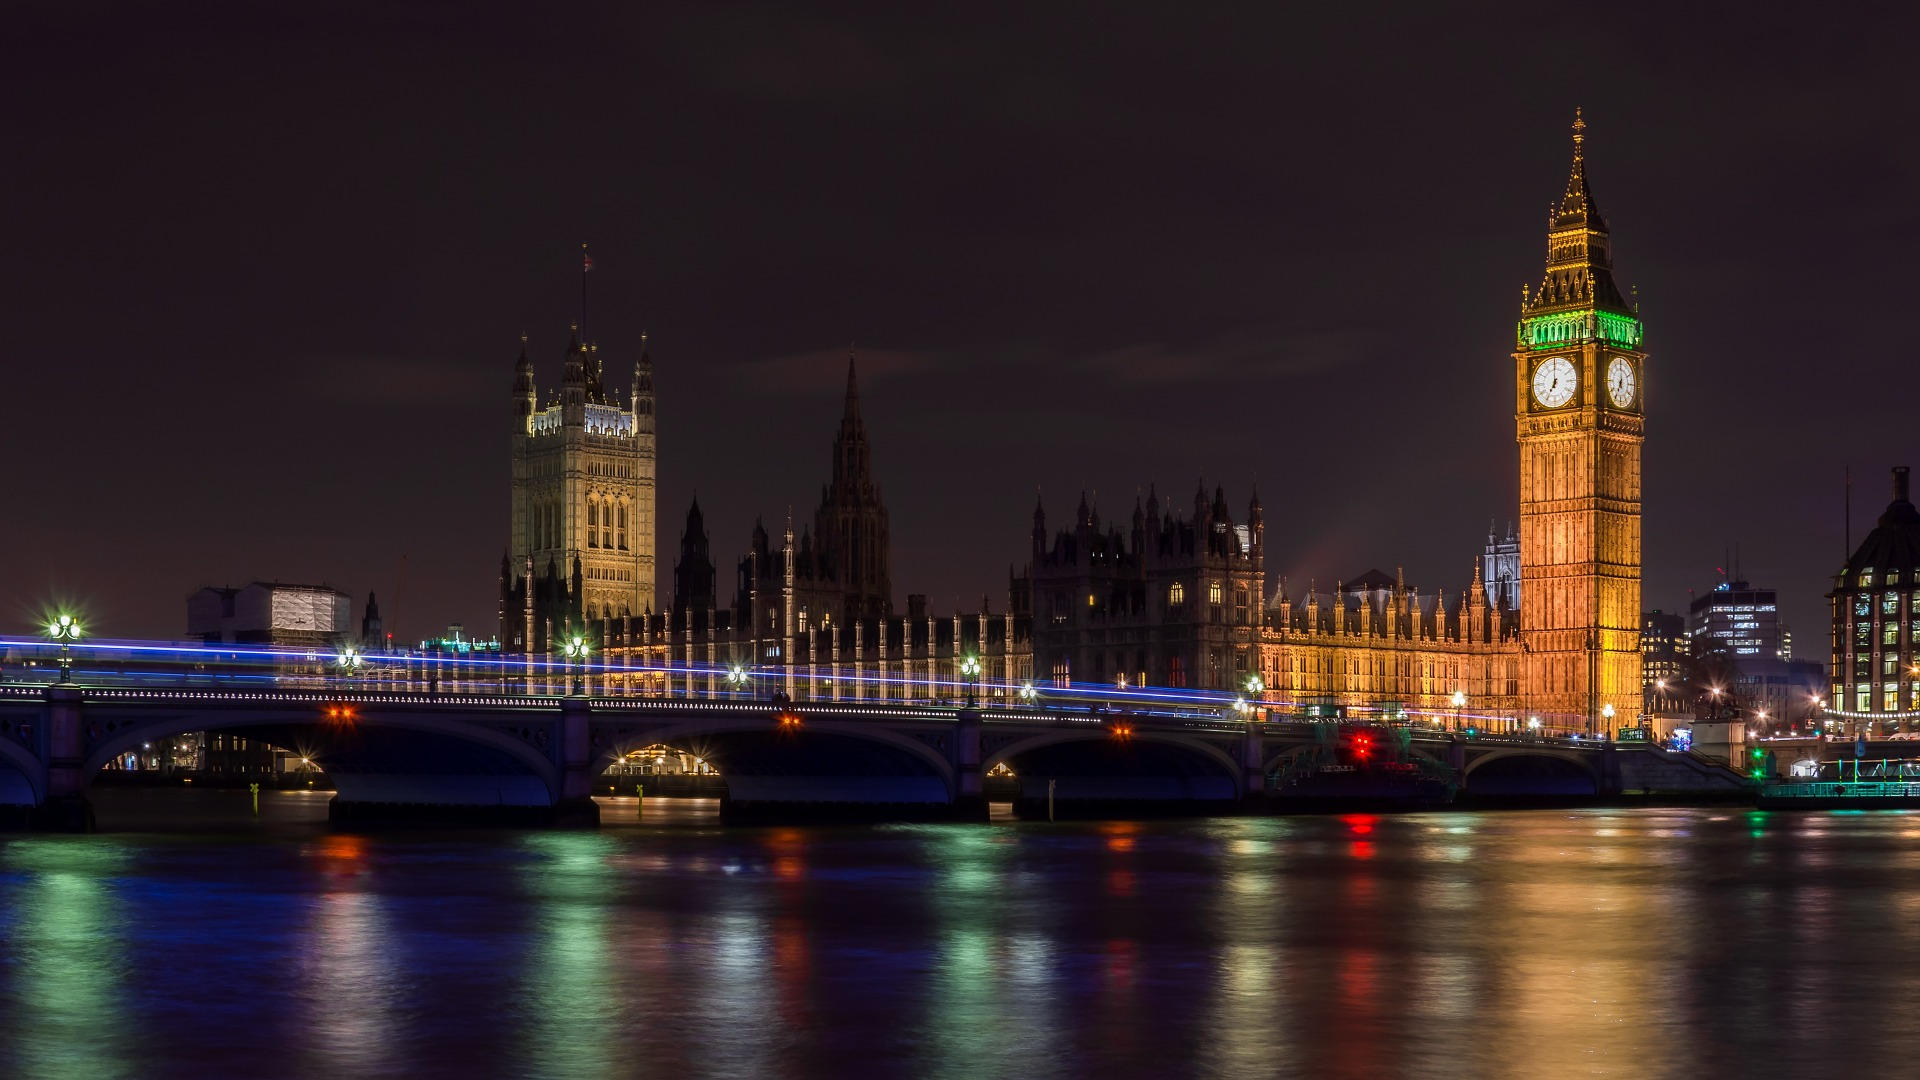 London bei Nacht - Big Ben, Palace of Westminster, London Bridge